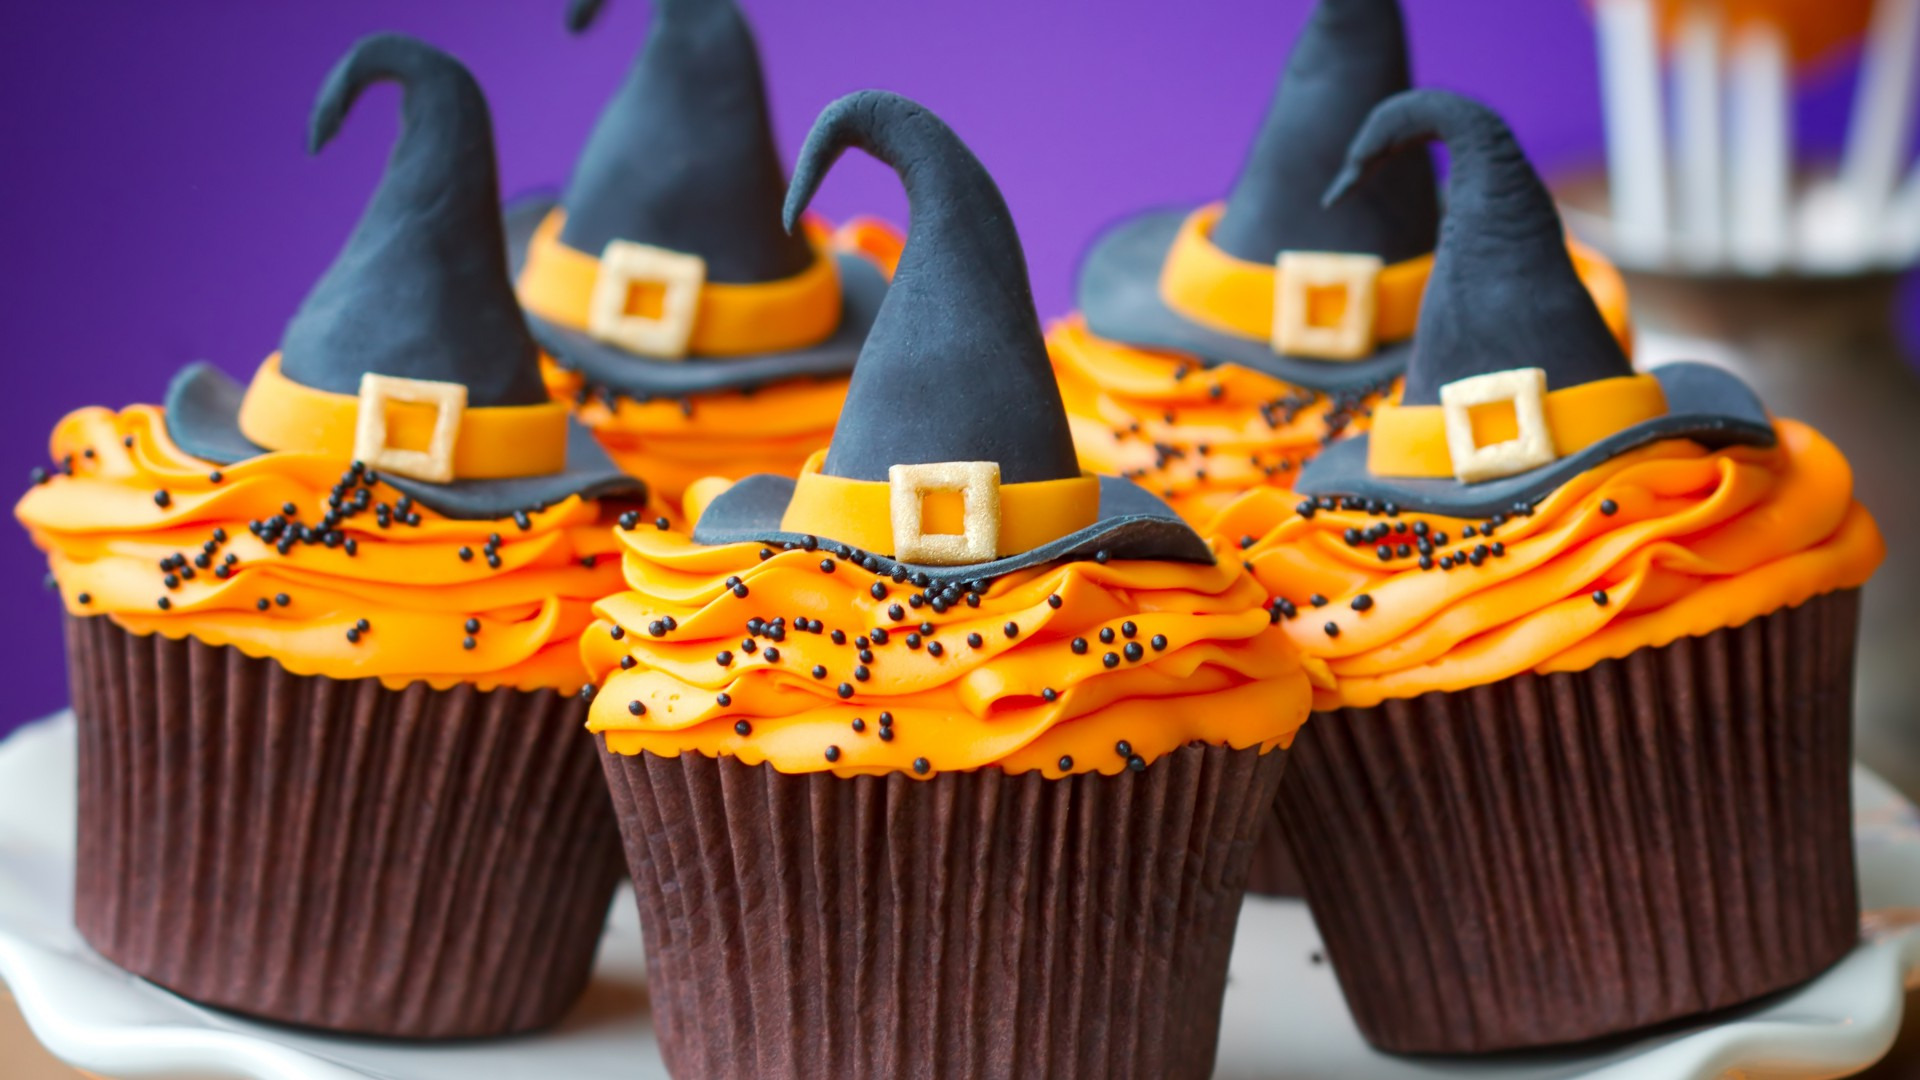 Cupcakes, Helloween, Witch Hats, desserts, pastries, cream, powdered, sugar, orange (horizontal)